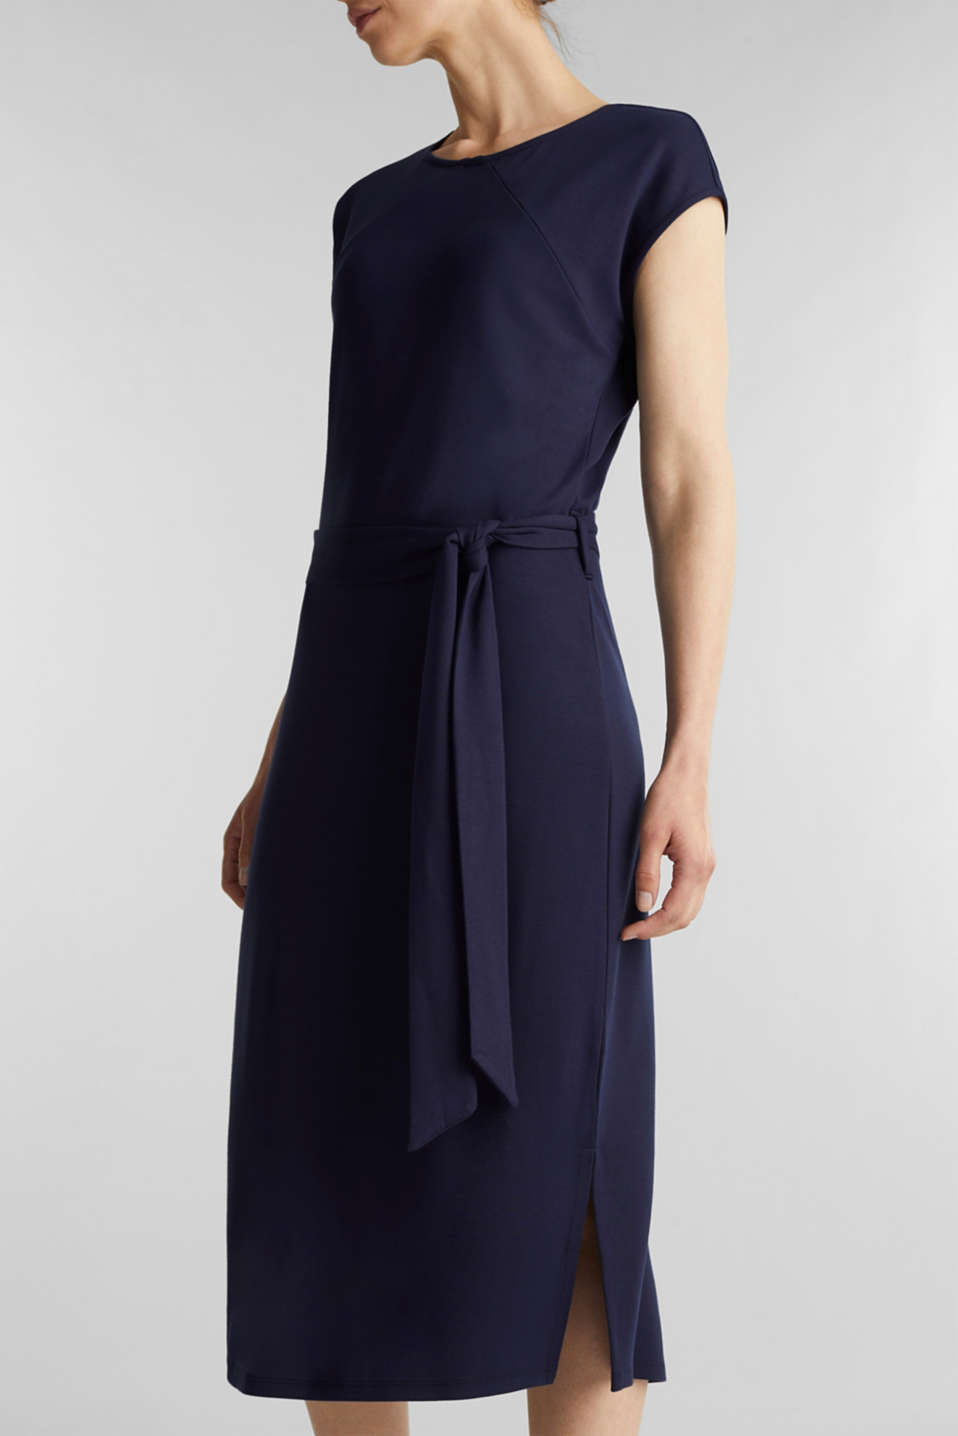 Punto jersey dress with a belt, NAVY, detail image number 3